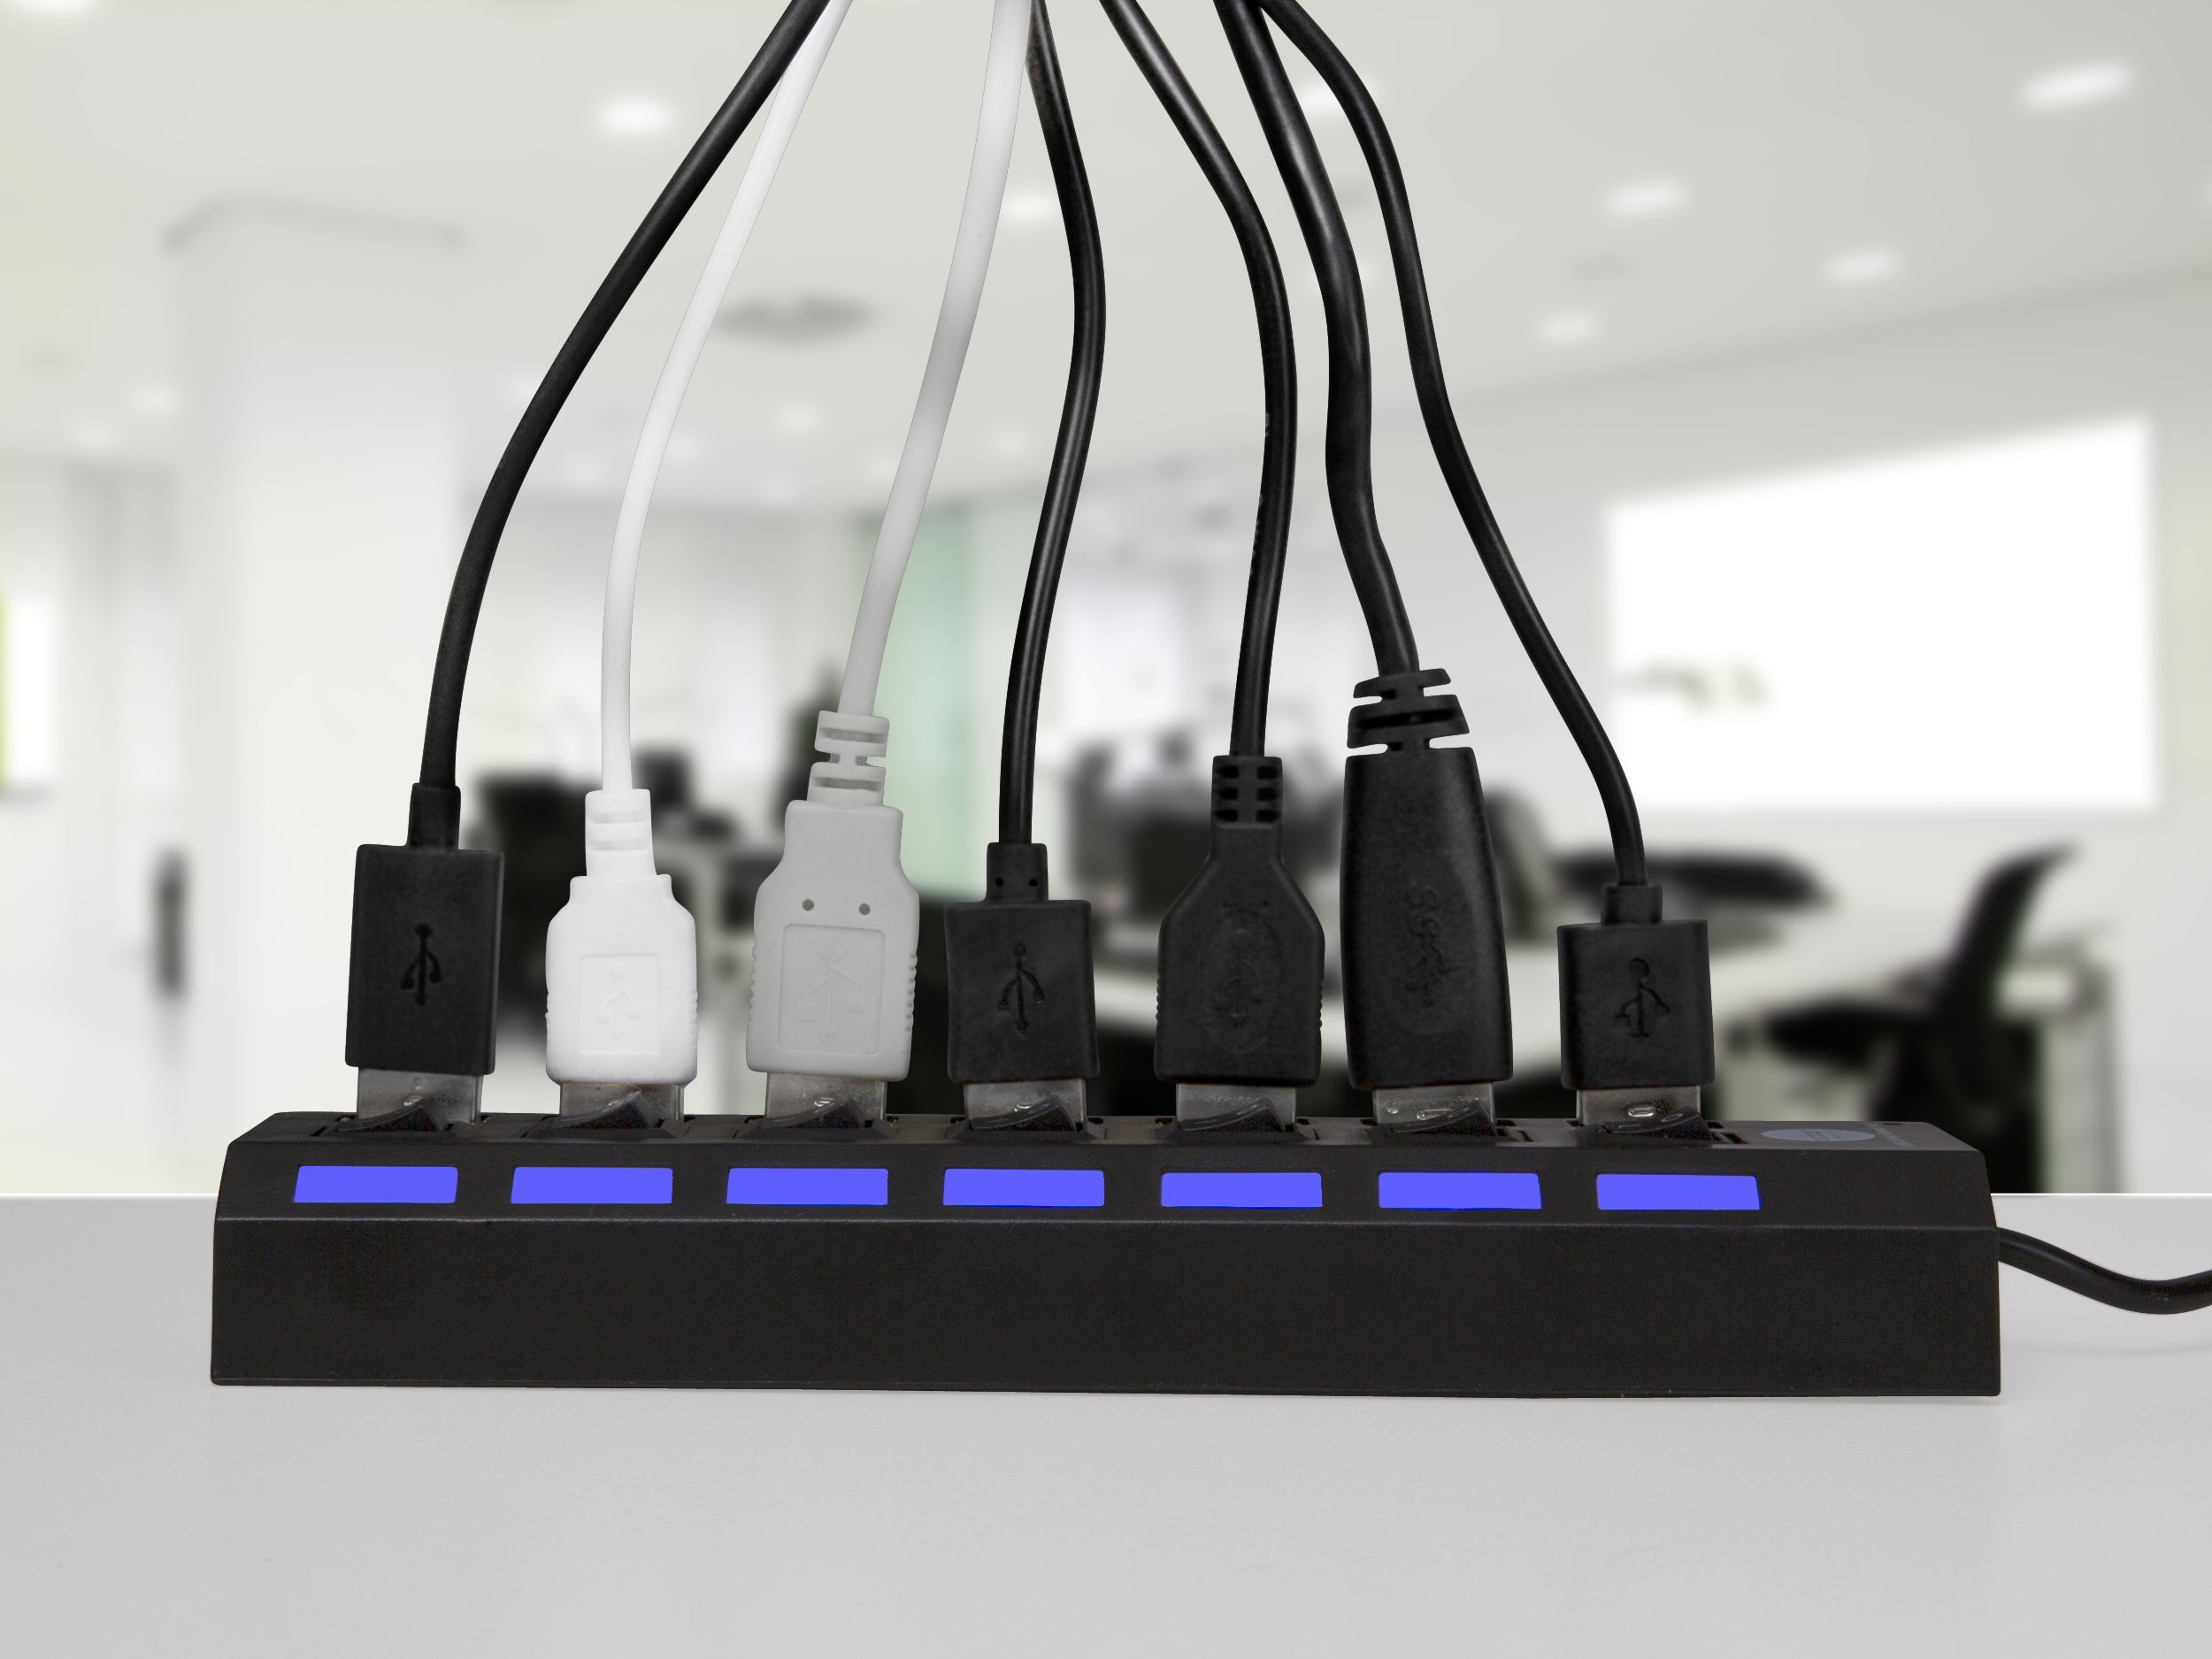 7 Port USB 2.0 Hub with Individual Power Switches and LEDs On Off Switch Design Slim Compact Lightweight Fast Communication For PC Linux Mac Windows Smarts Tvs Accessory Travel Great Price OCBAN by Ocban (Image #4)